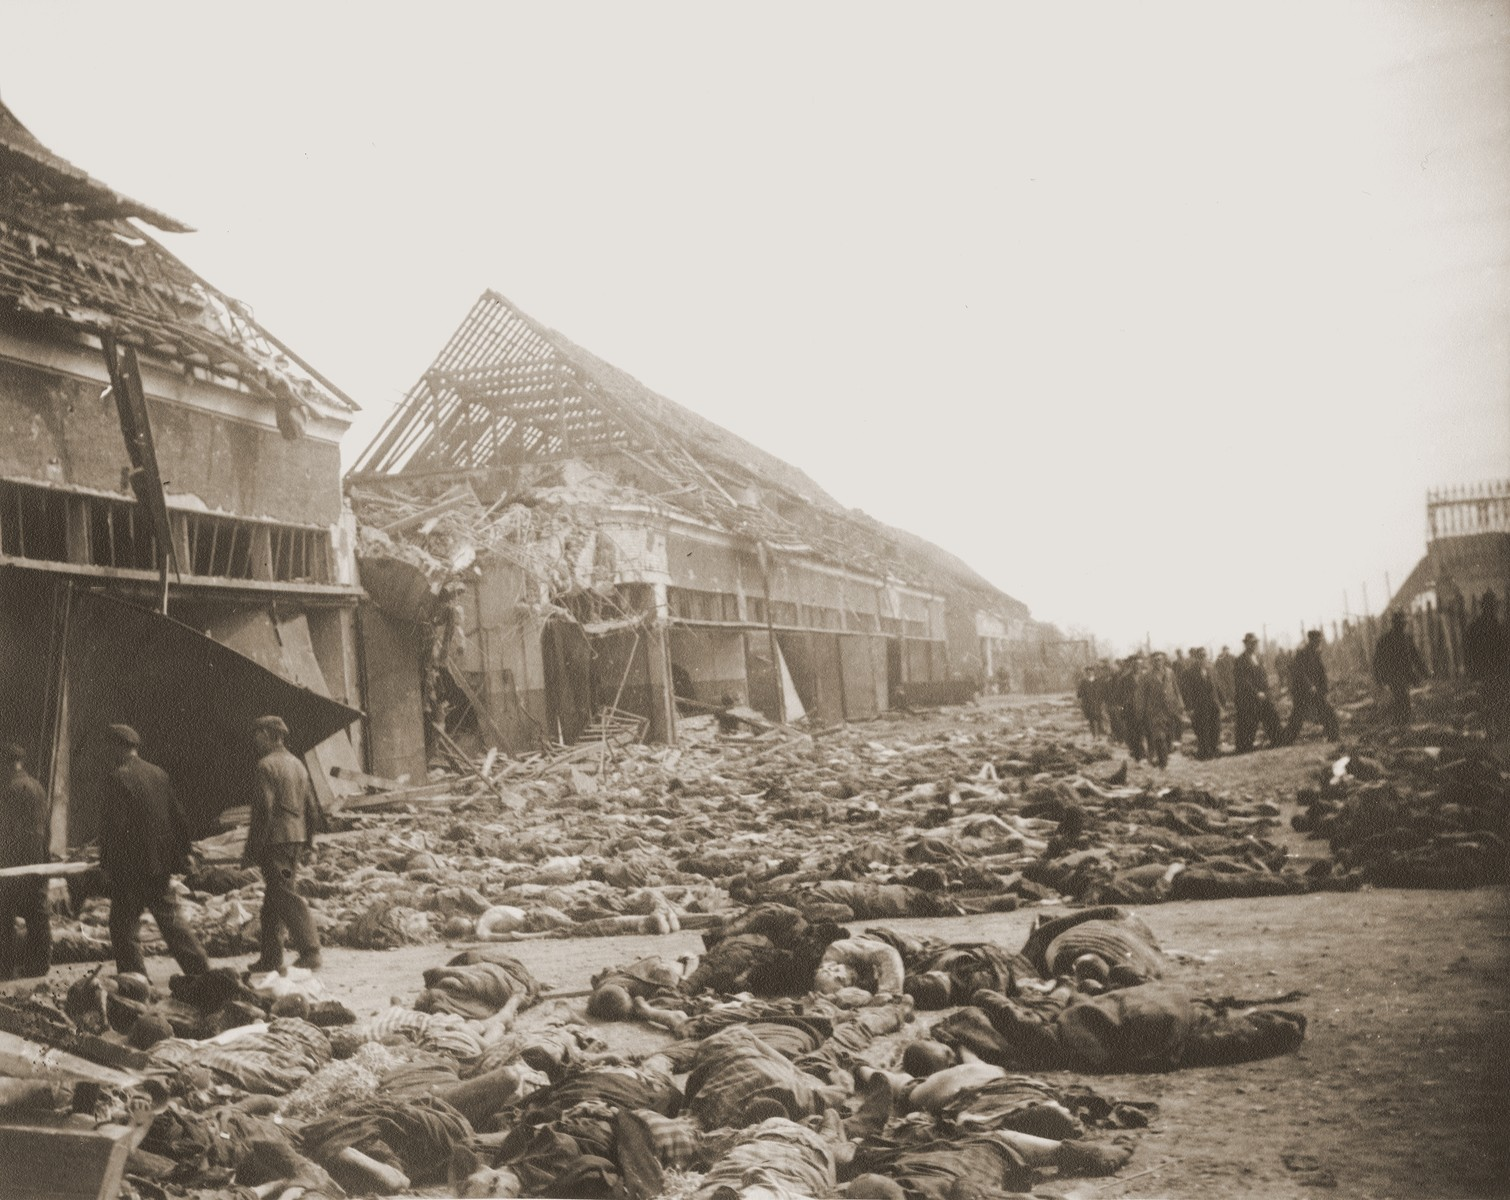 View of the main street of the Nordhausen concentration camp, outside of the central barracks (Boelke Kaserne), where the bodies of prisoners have been laid out in long rows.  German civilians are being forced to carry the corpses out of the barracks and into the street.